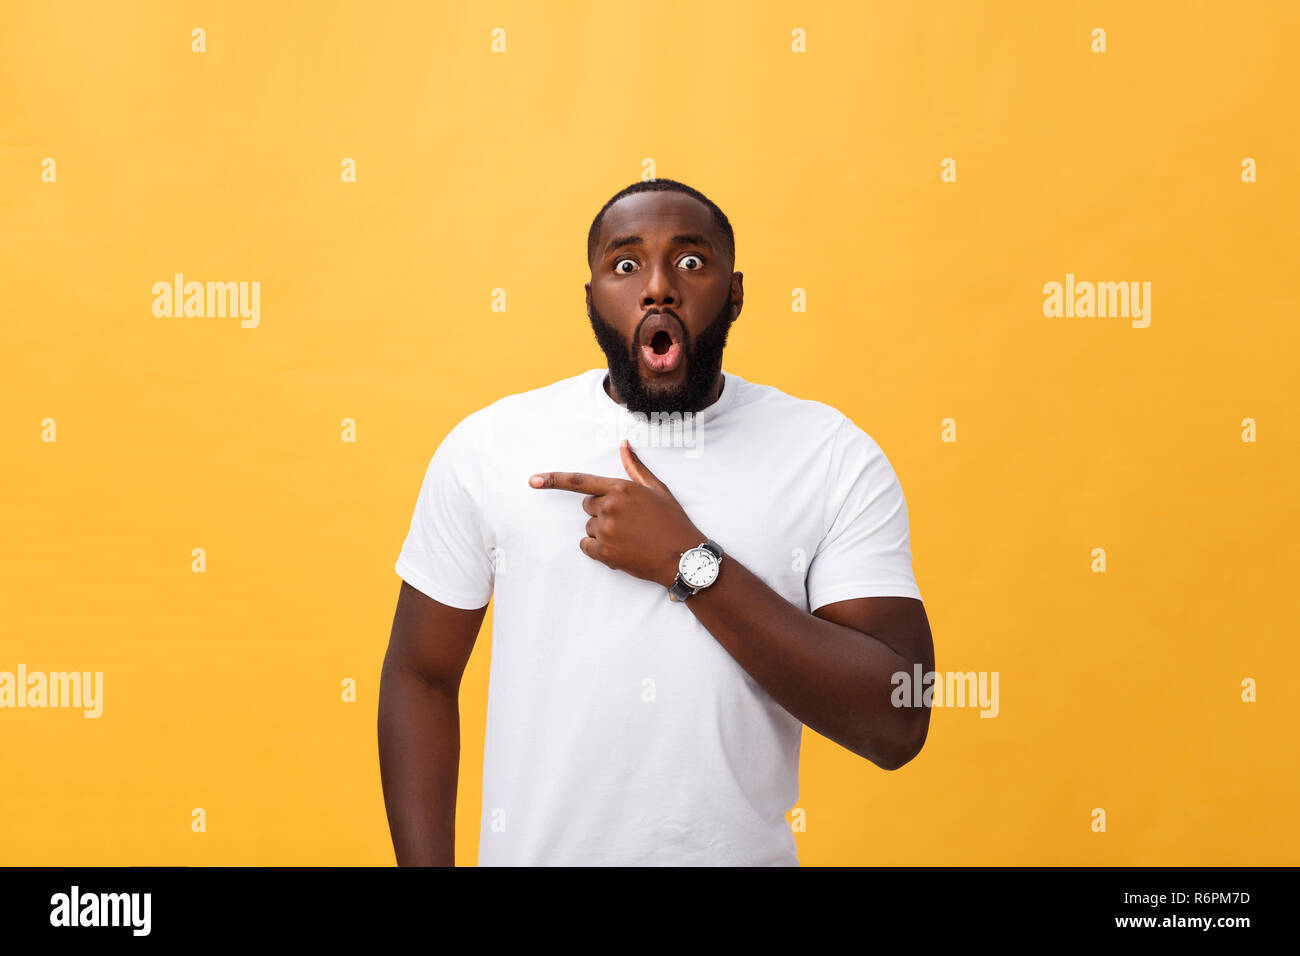 Amazed young African American hipster wearing white t-shirt holding hands in surprised gesture, keeping mouth wide open, looking shocked. - Stock Image